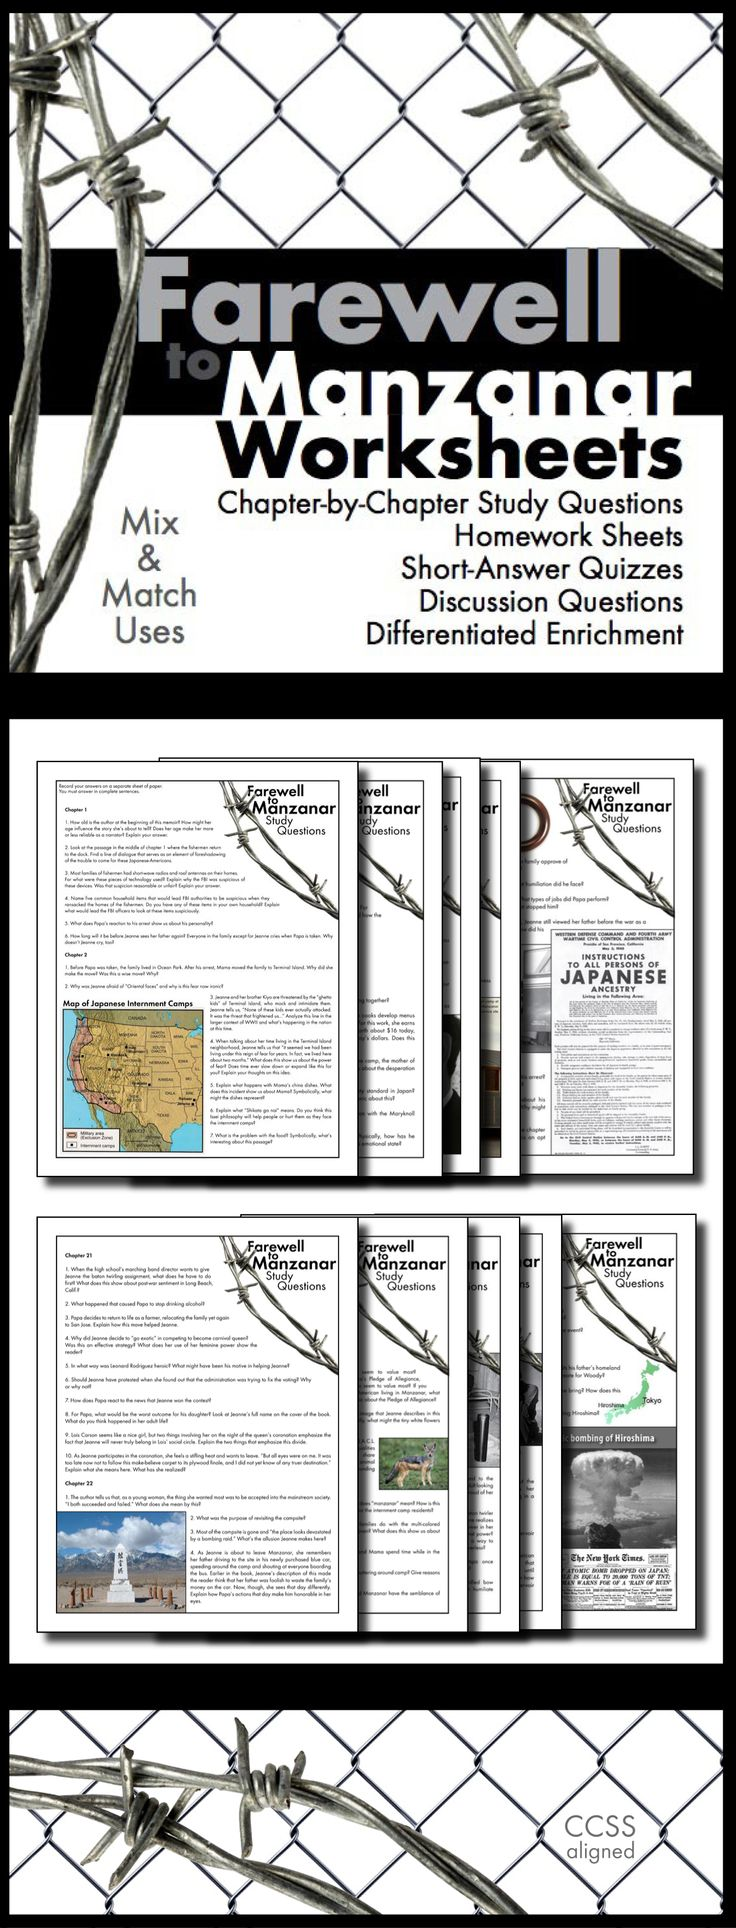 Worksheets American Literature Worksheets 17 best images about farewell to manzanar on pinterest japanese internment worksheets hw discussion for memoir readers workshopamerican literatureconcentration